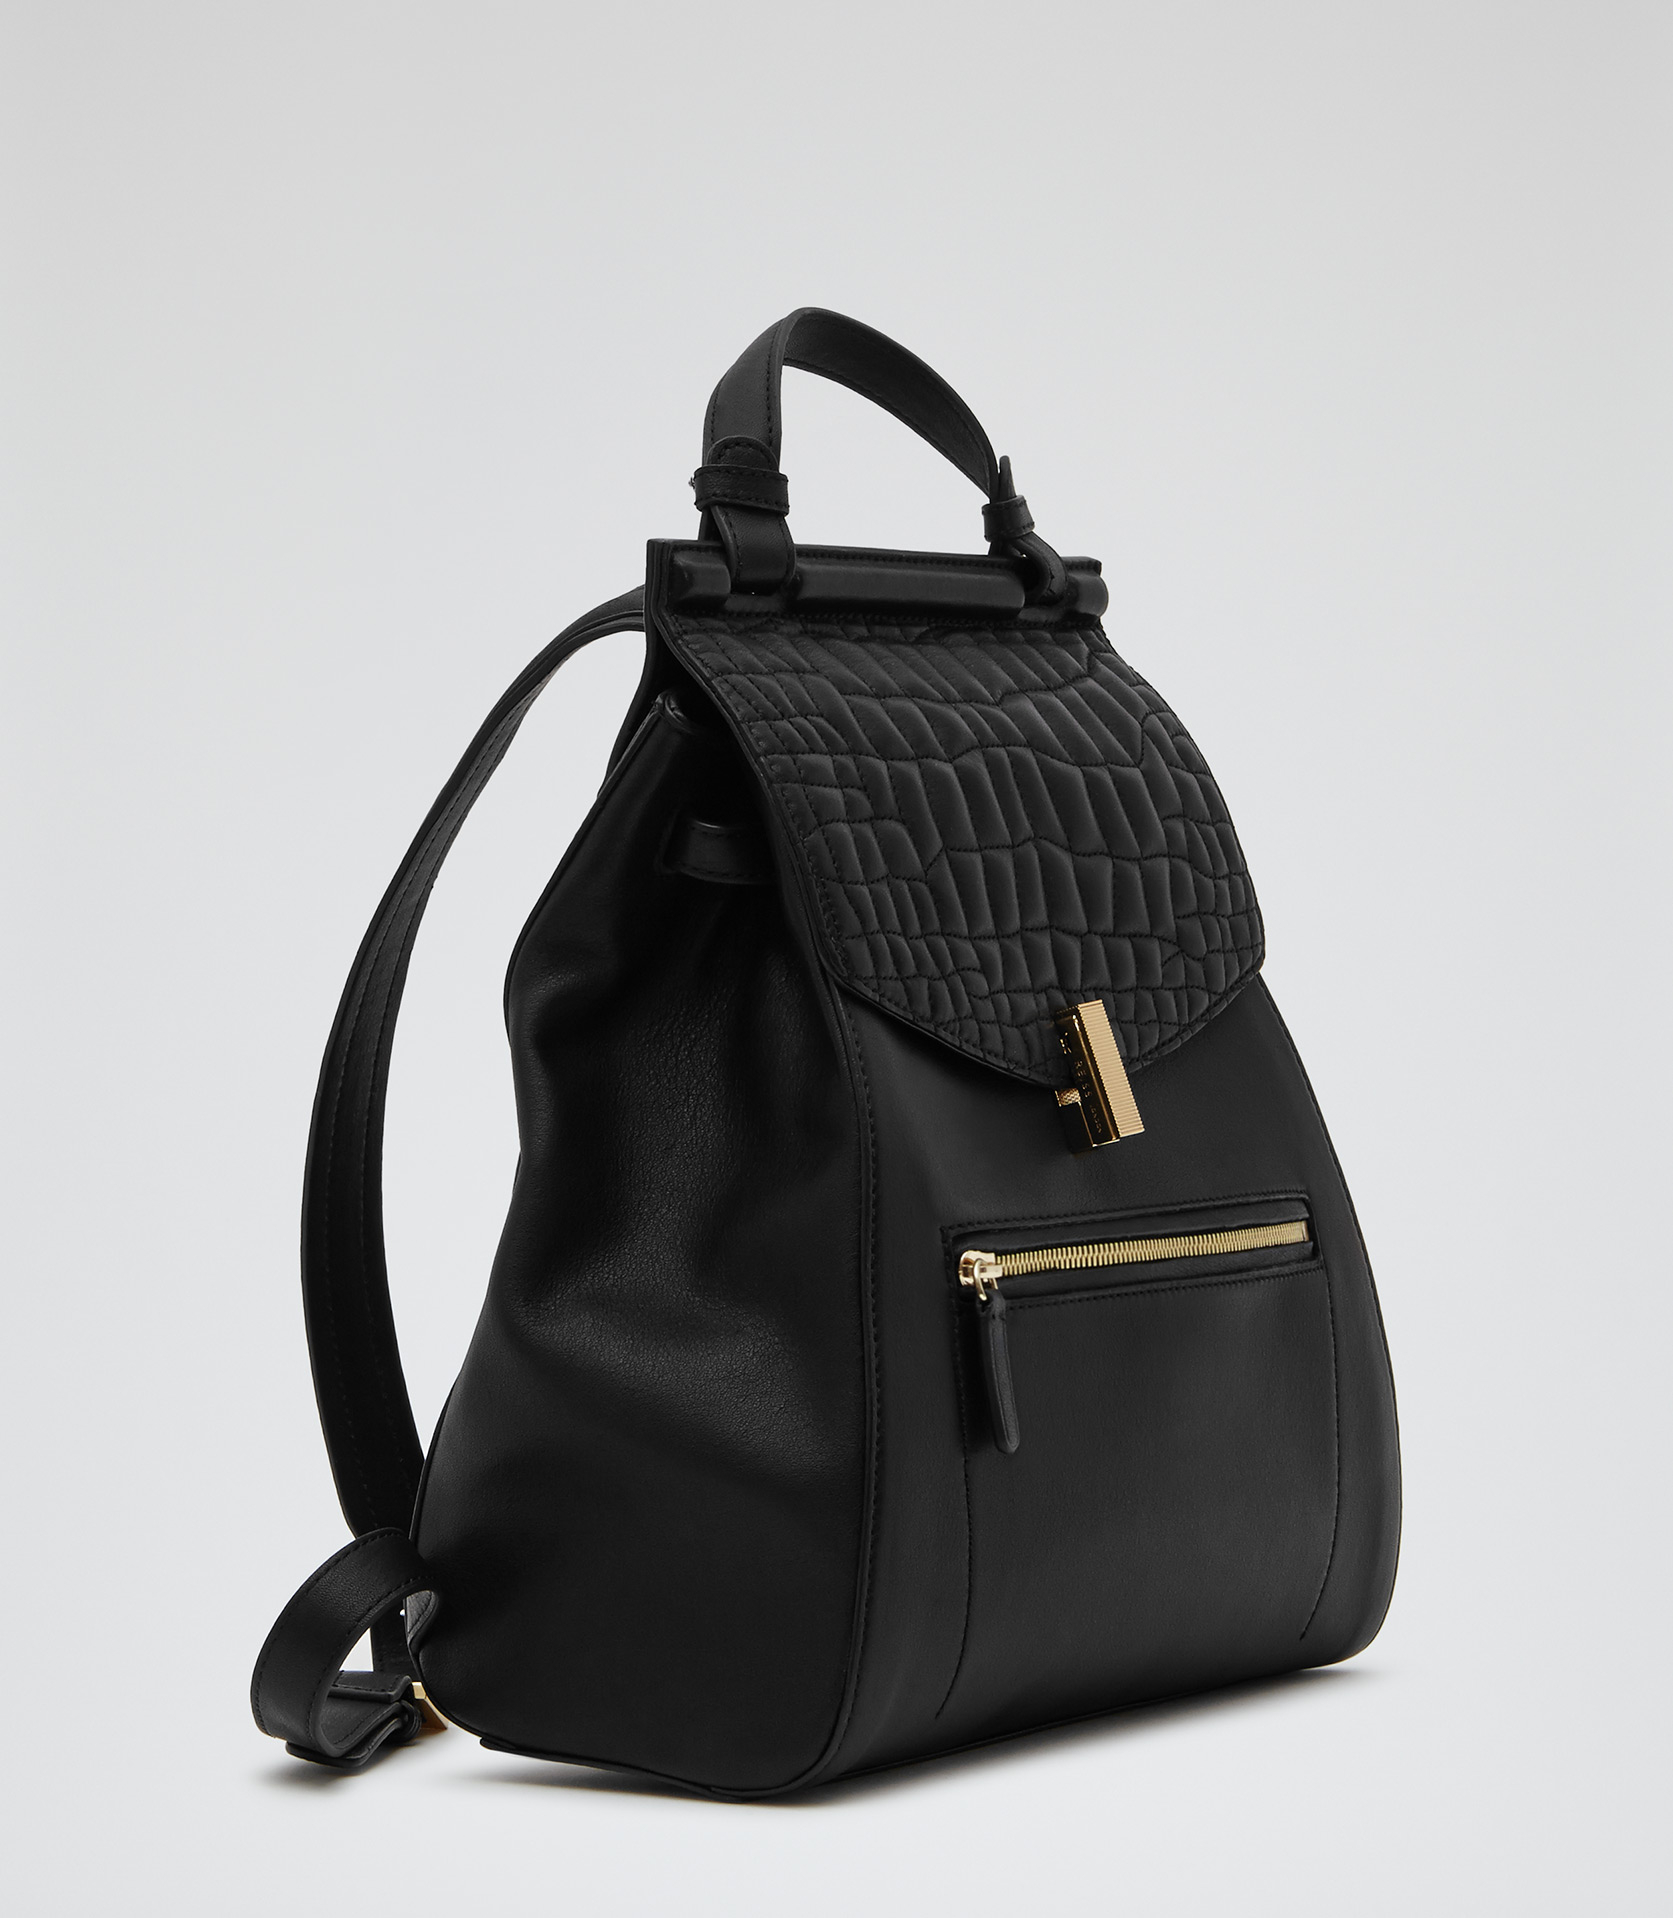 Lyst - Reiss Alto Quilted Leather Rucksack in Black : black quilted rucksack - Adamdwight.com